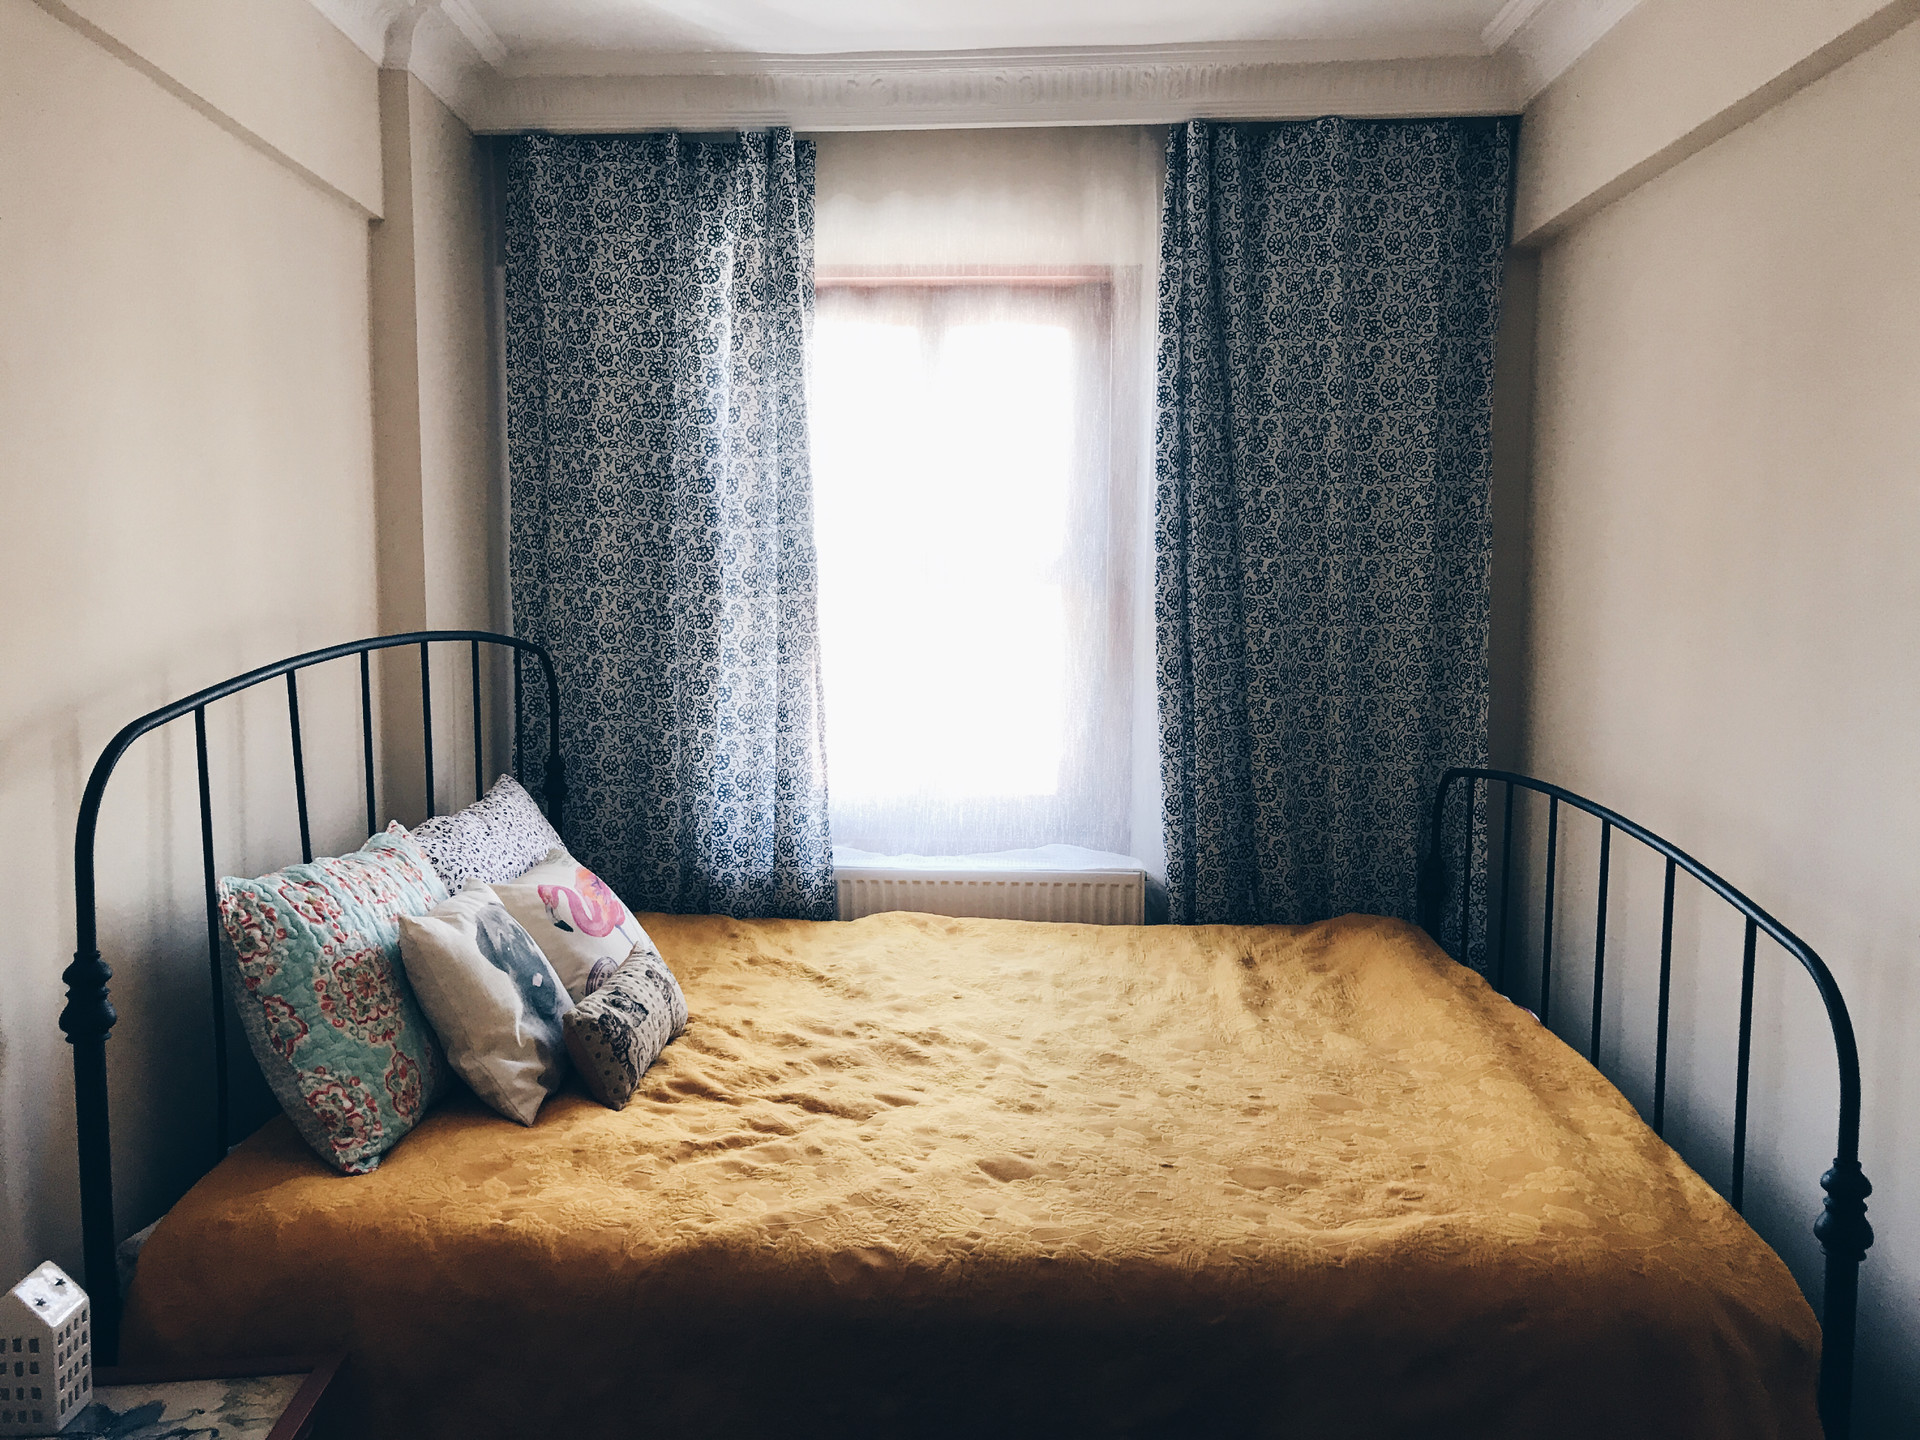 rental-room-at-uskudar-2-min-to-ferry-and-subway-611d72bd08adf2ce43e335ba72f773d5